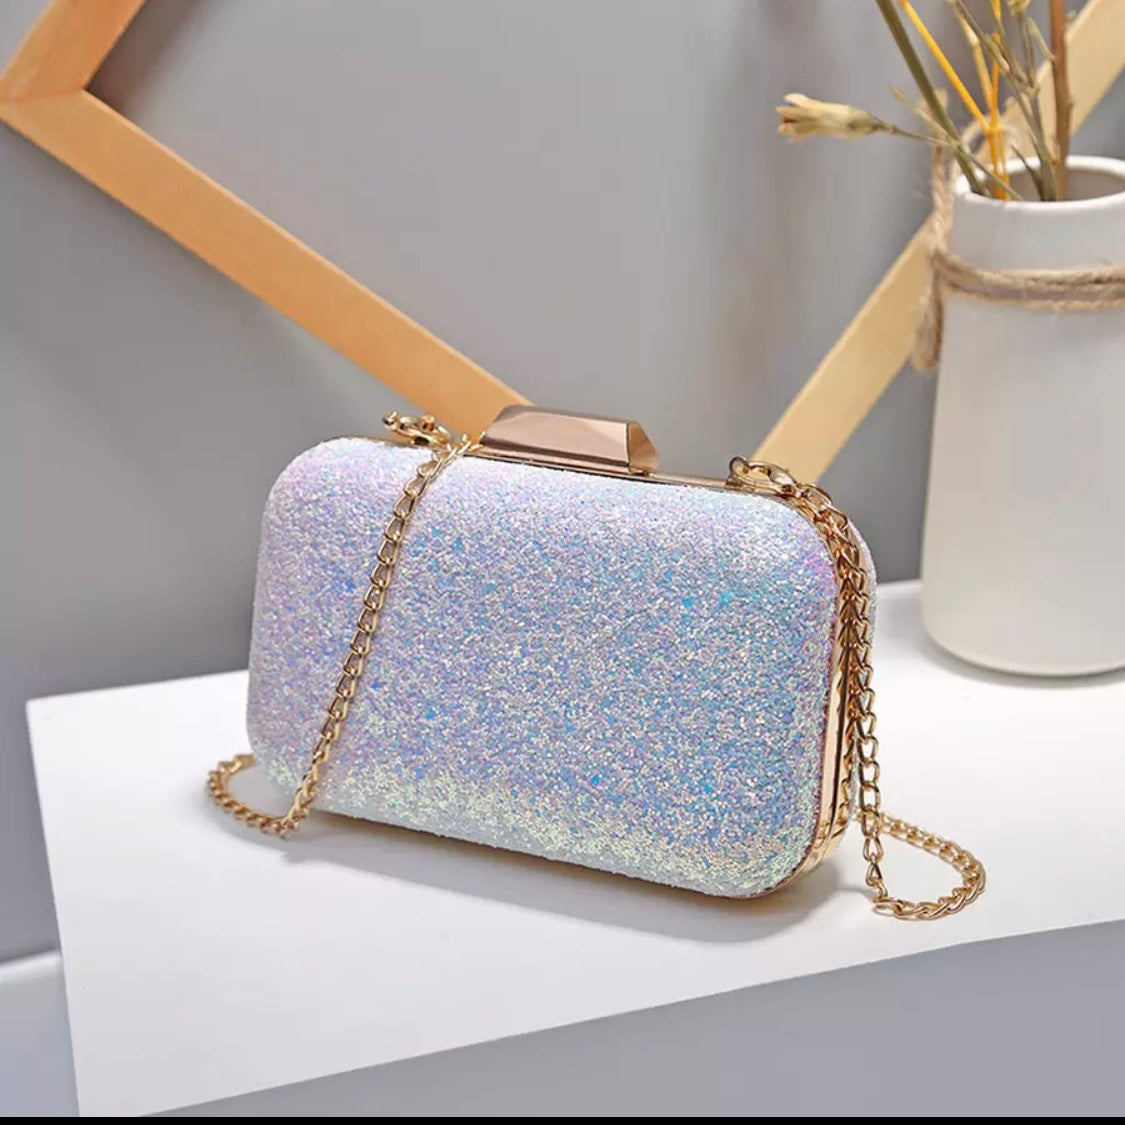 Sparkly Embellished Hard Case Evening Clutch Bag